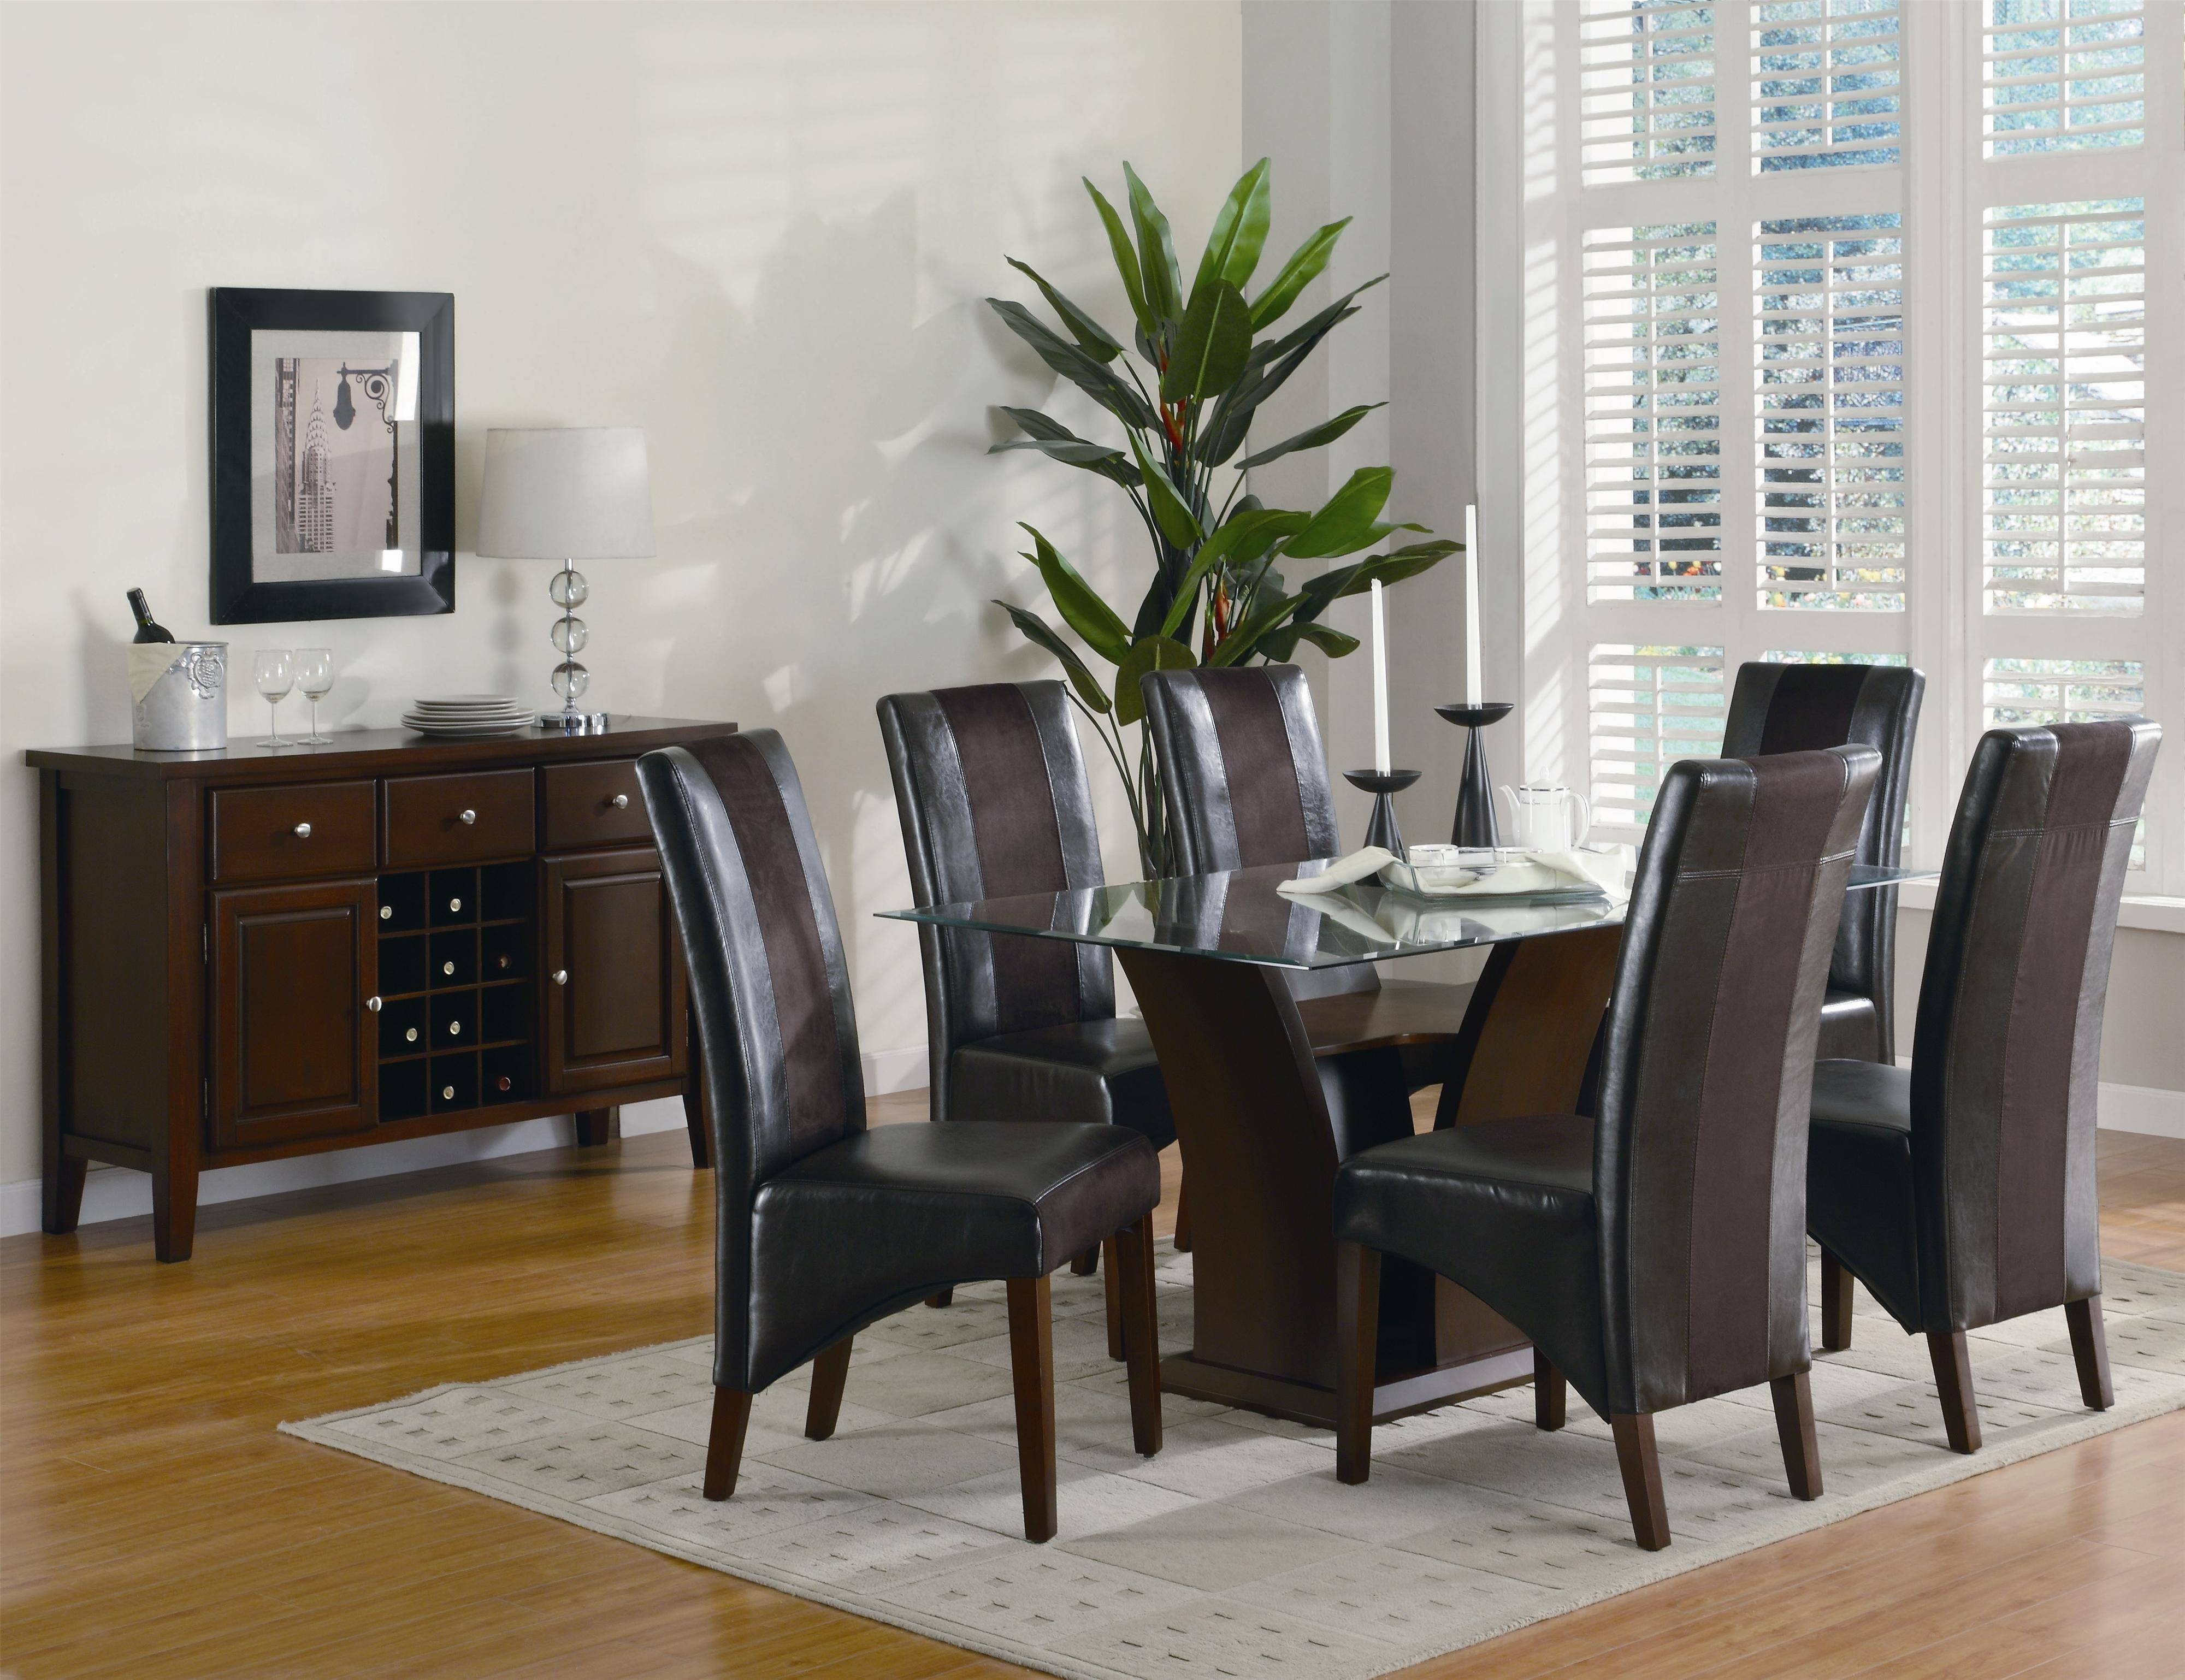 Popular Photo of Dining Room Table Chairs And Sideboards